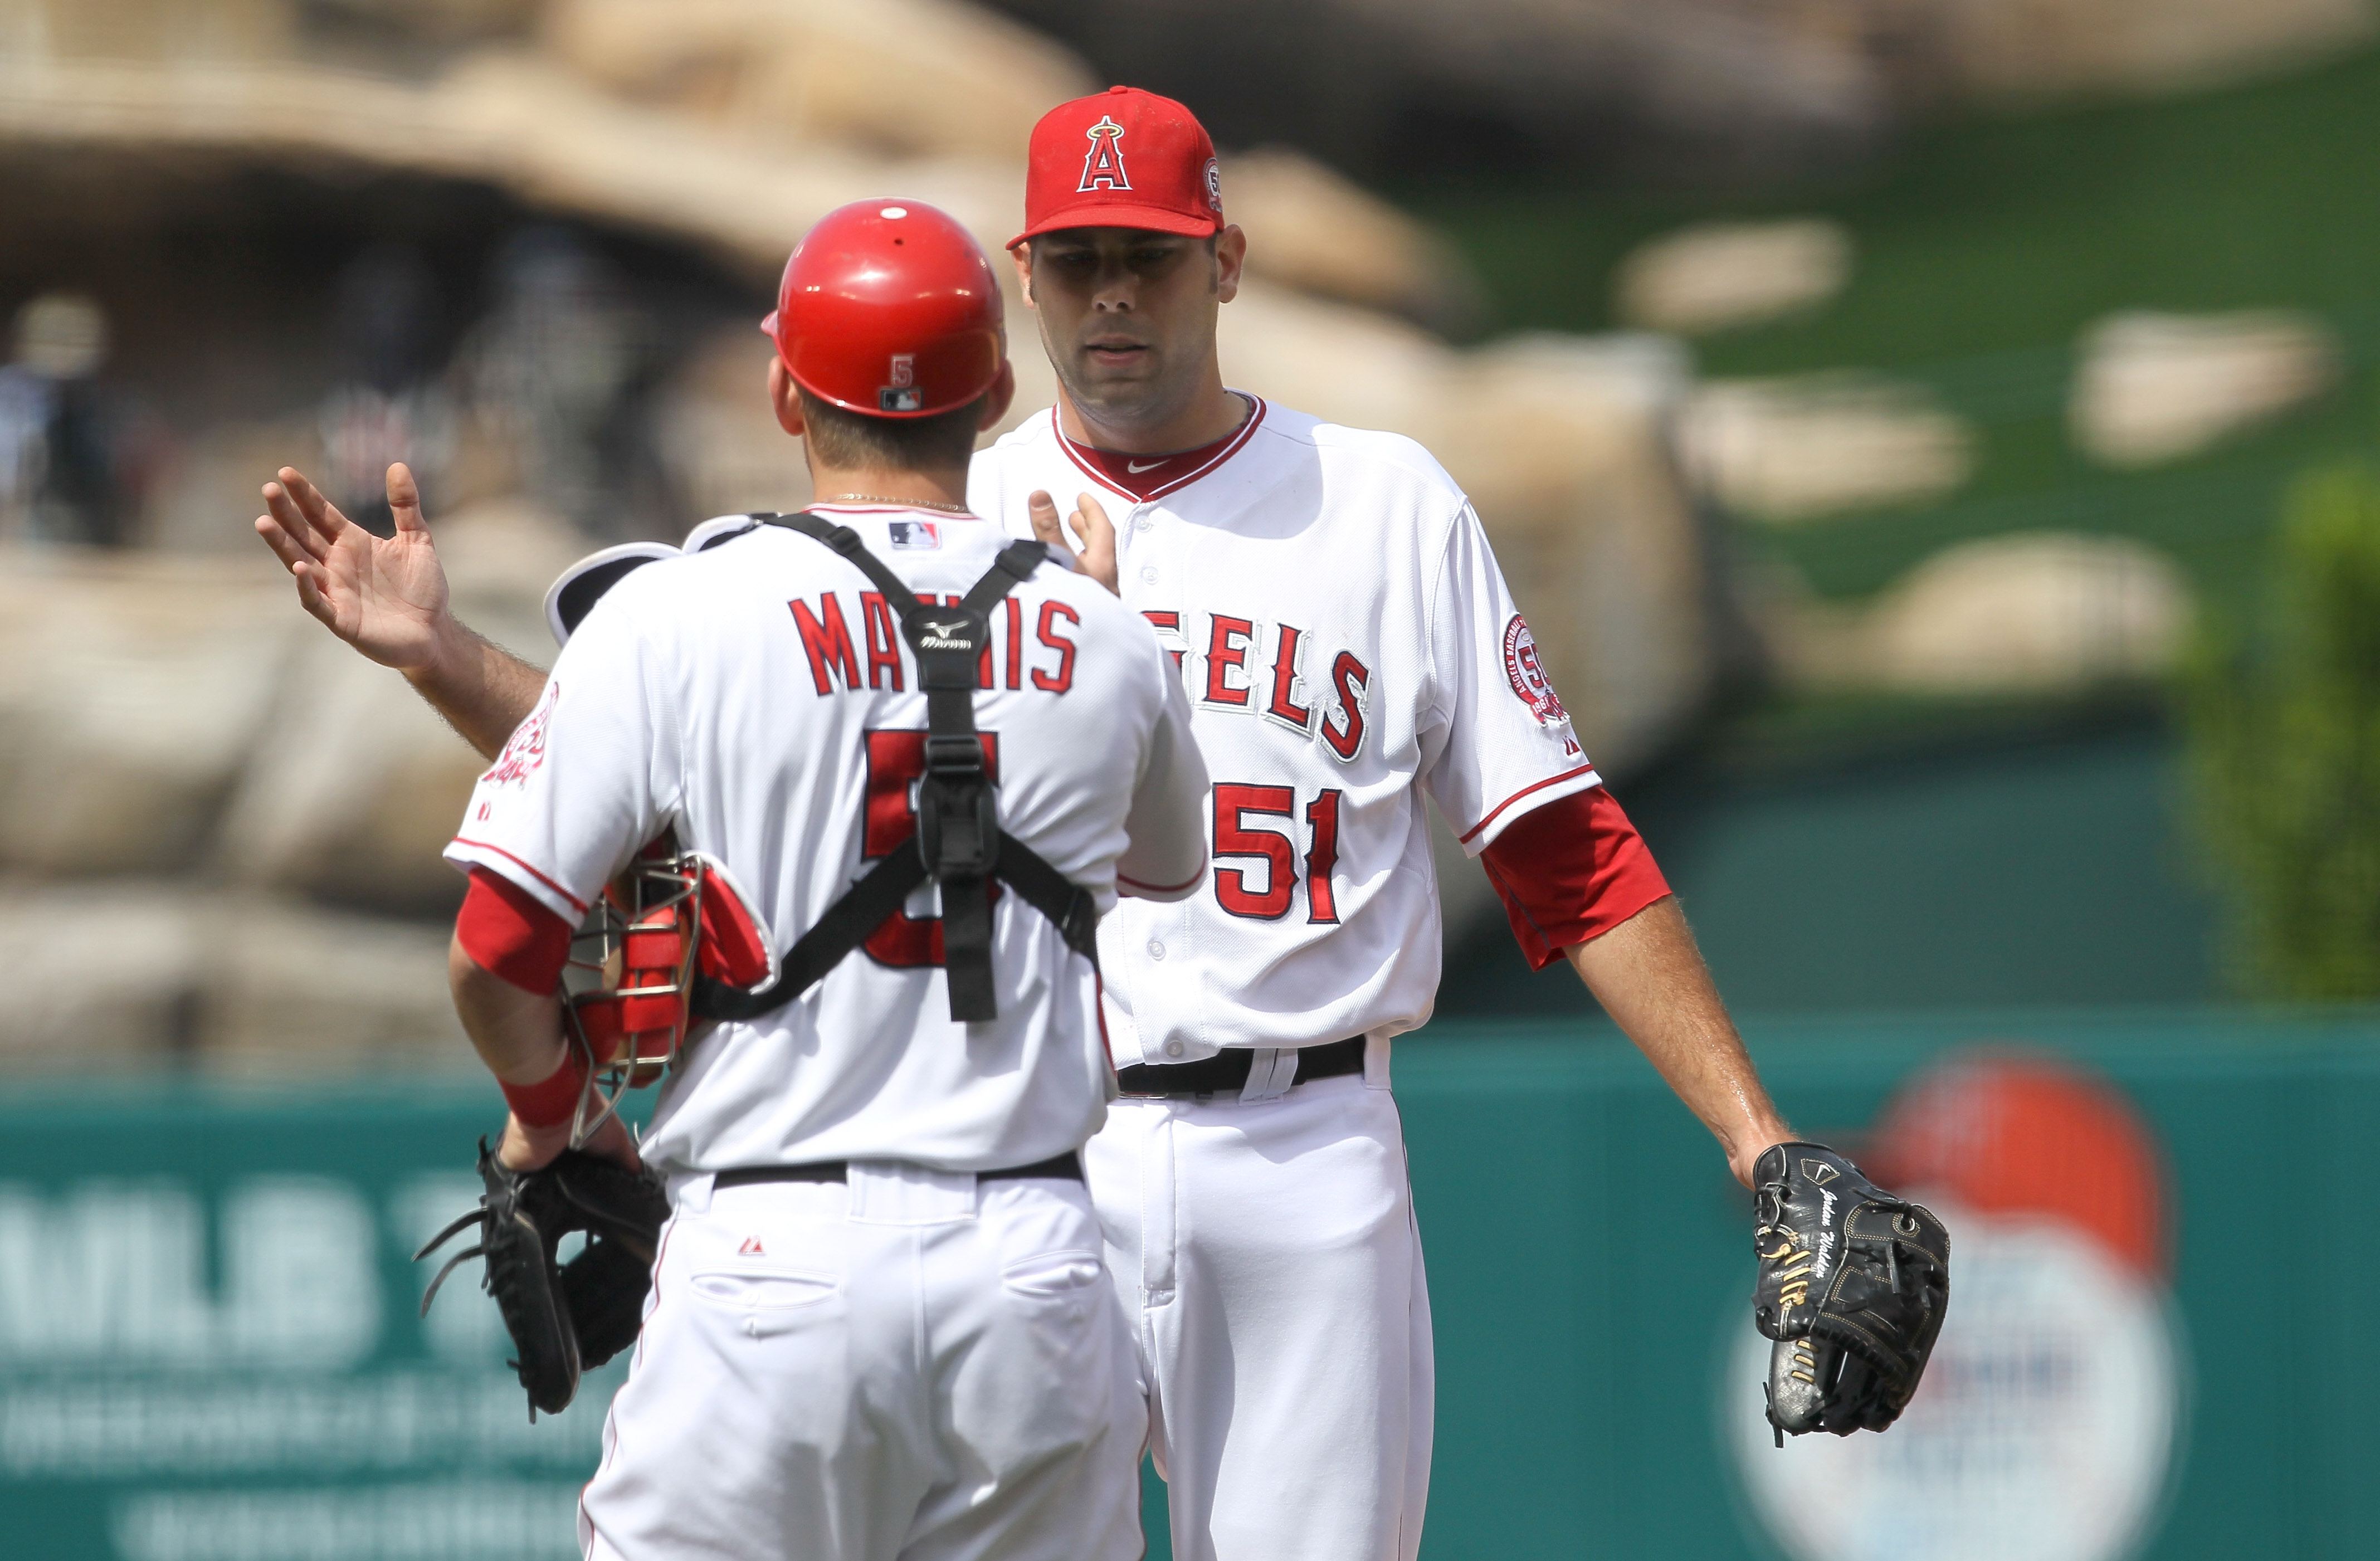 ANAHEIM, CA - MAY 22:   Relief pitcher Jordan Walden and catcher Jeff Mathis #5 of the Los Angeles Angels of Anaheim celebrate after getting the final out against the Atlanta Braves on May 22, 2011 at Angel Stadium in Anaheim, California.   The Angels won